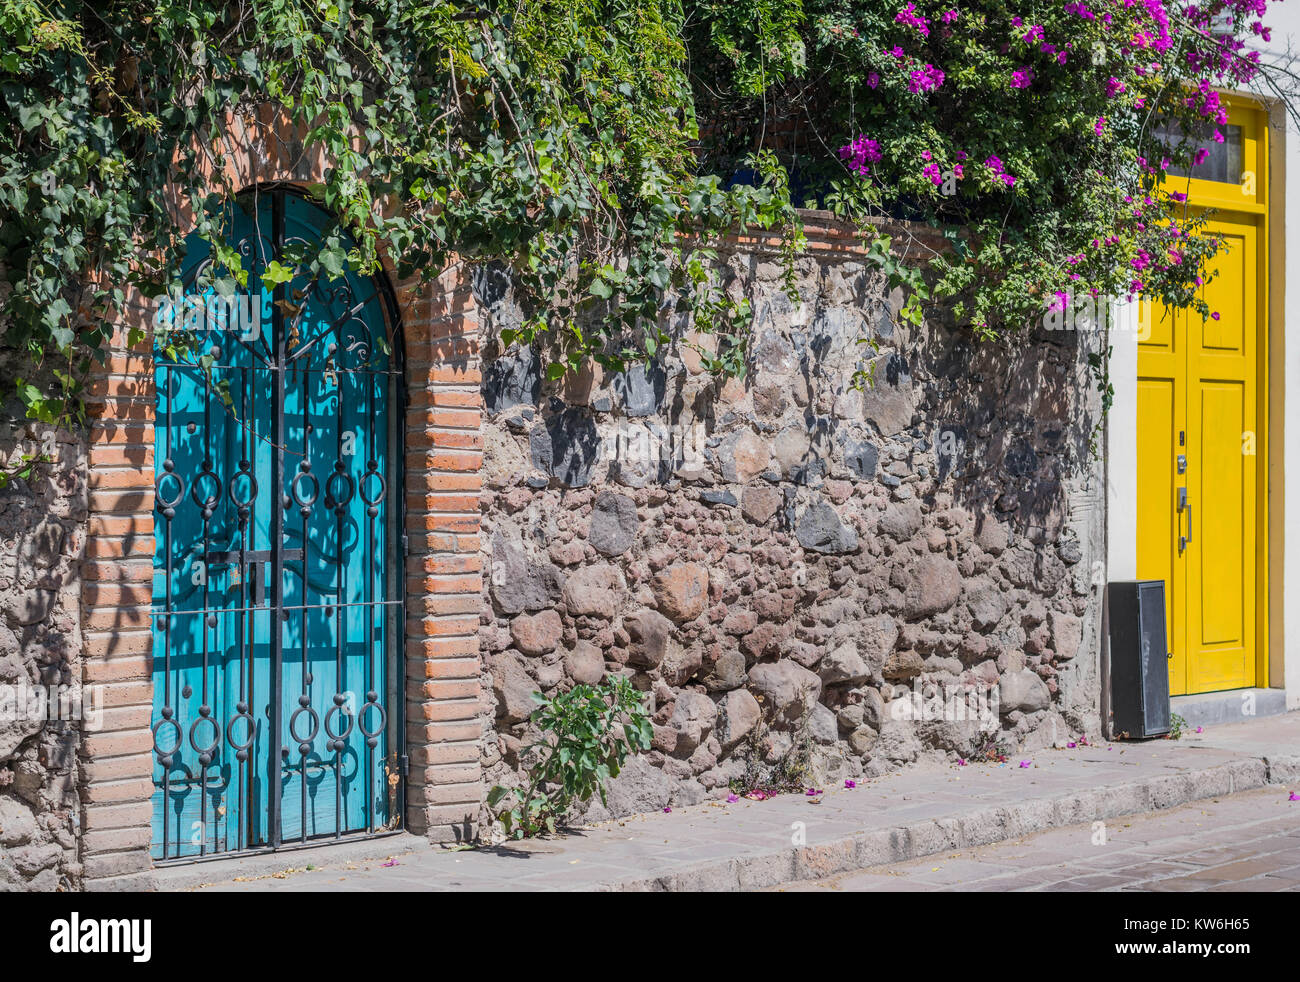 Arched blue double door with a black iron gate, a stone wall and a yellow double door, a stone walkway and some - Stock Image